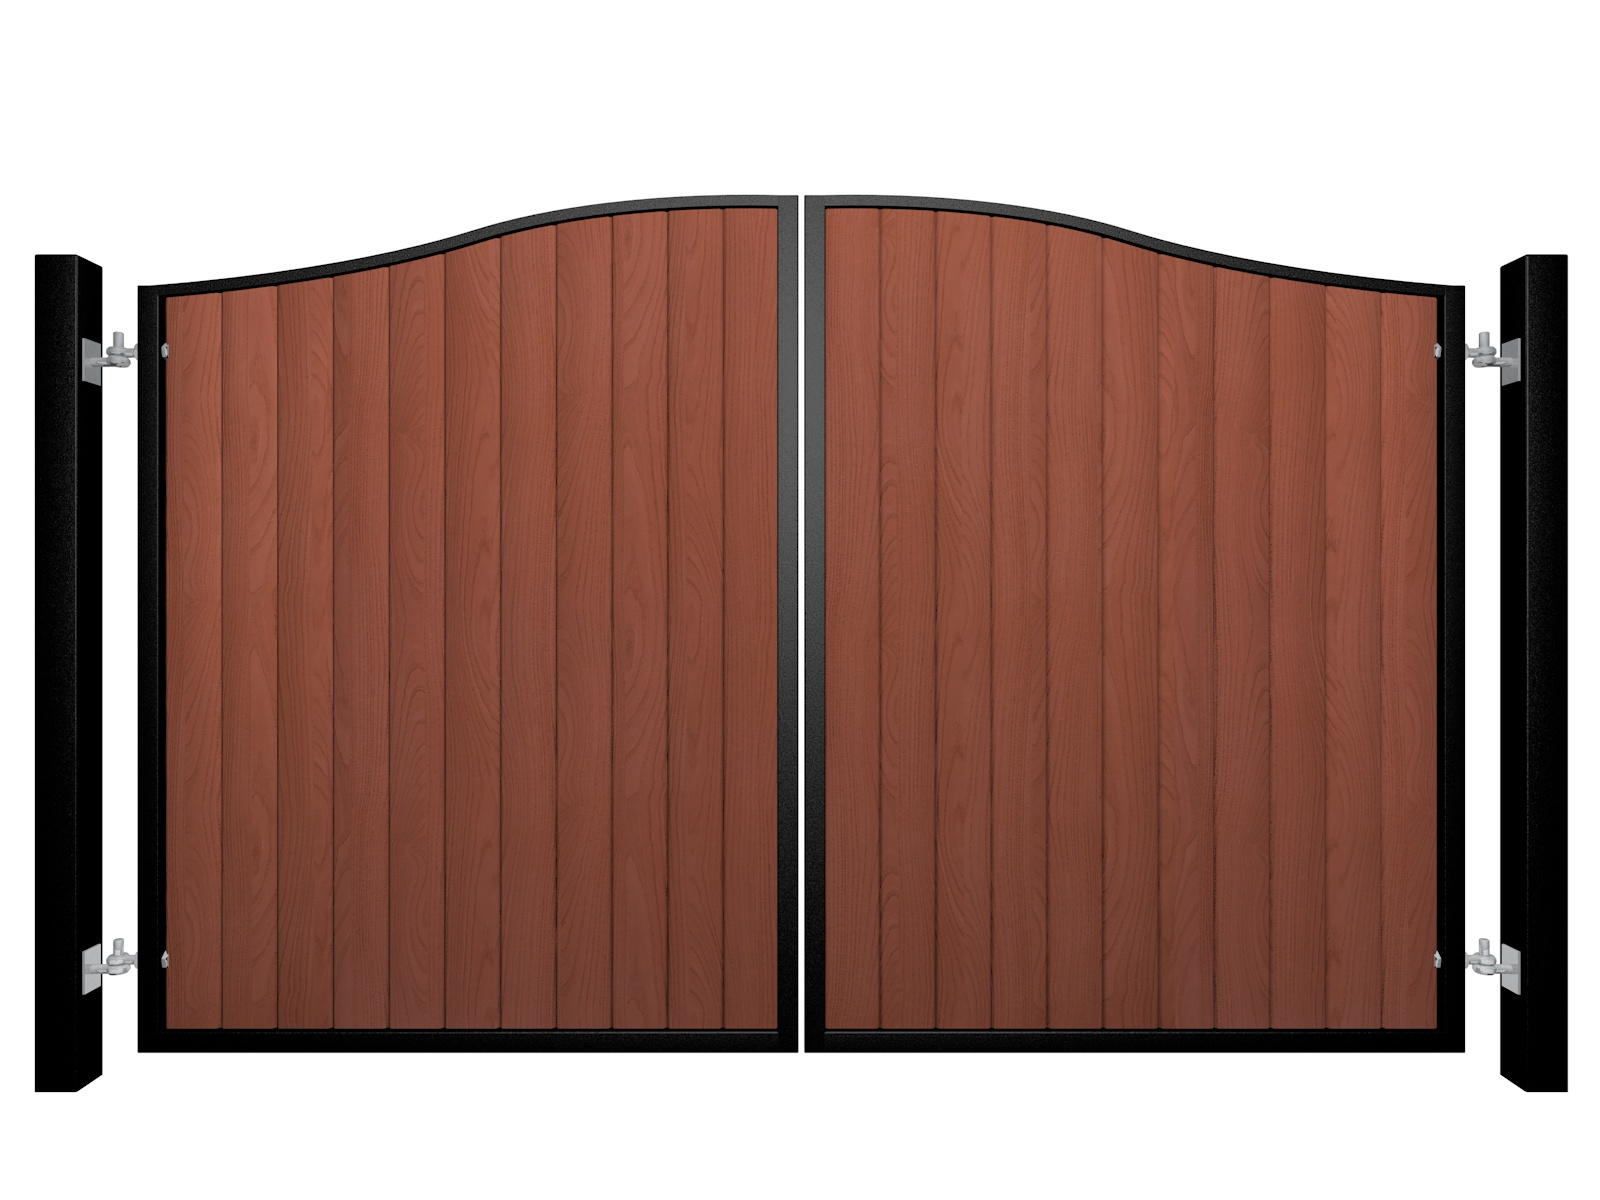 metal framed wood fill bell top automated driveway gate company bristol